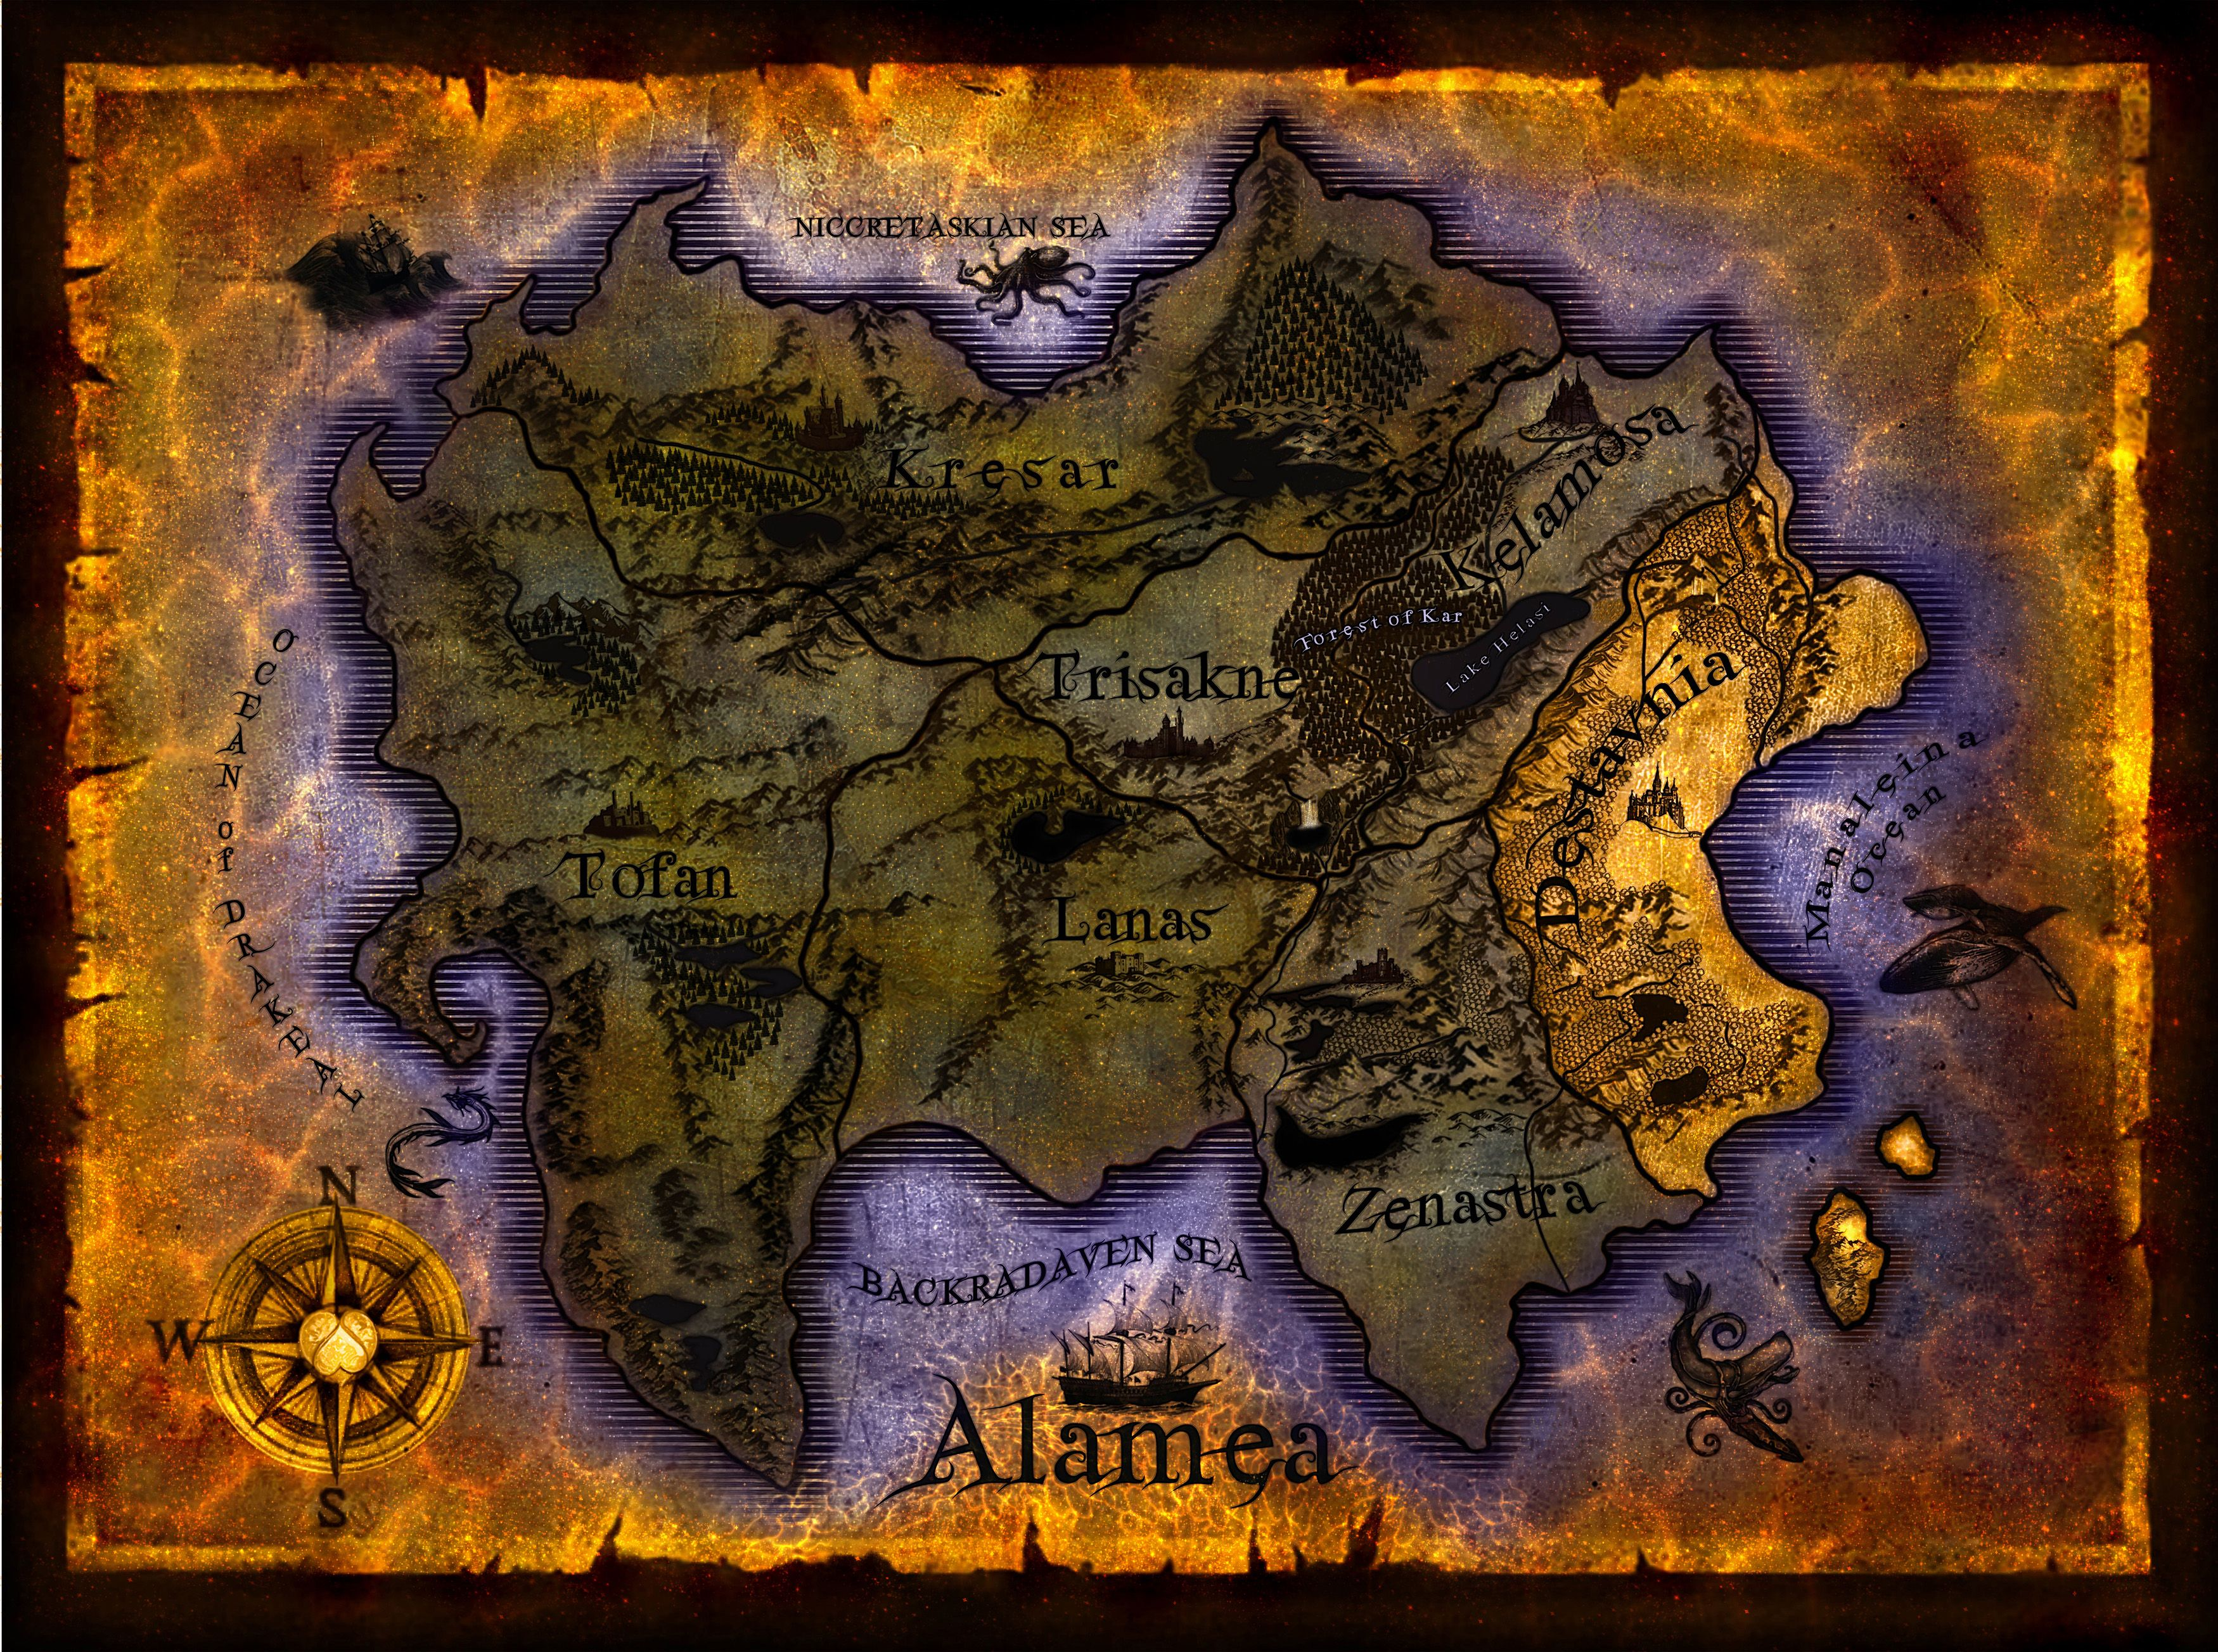 The map of the magical world of Alamea being engulfed by evil, as featured in The Half-Hearts Trilogy, written by authoress, Kealohilani. It is a sister world to our own beloved planet, Earth. Map designed by Kealohilani and artwork done by Steven Squire.